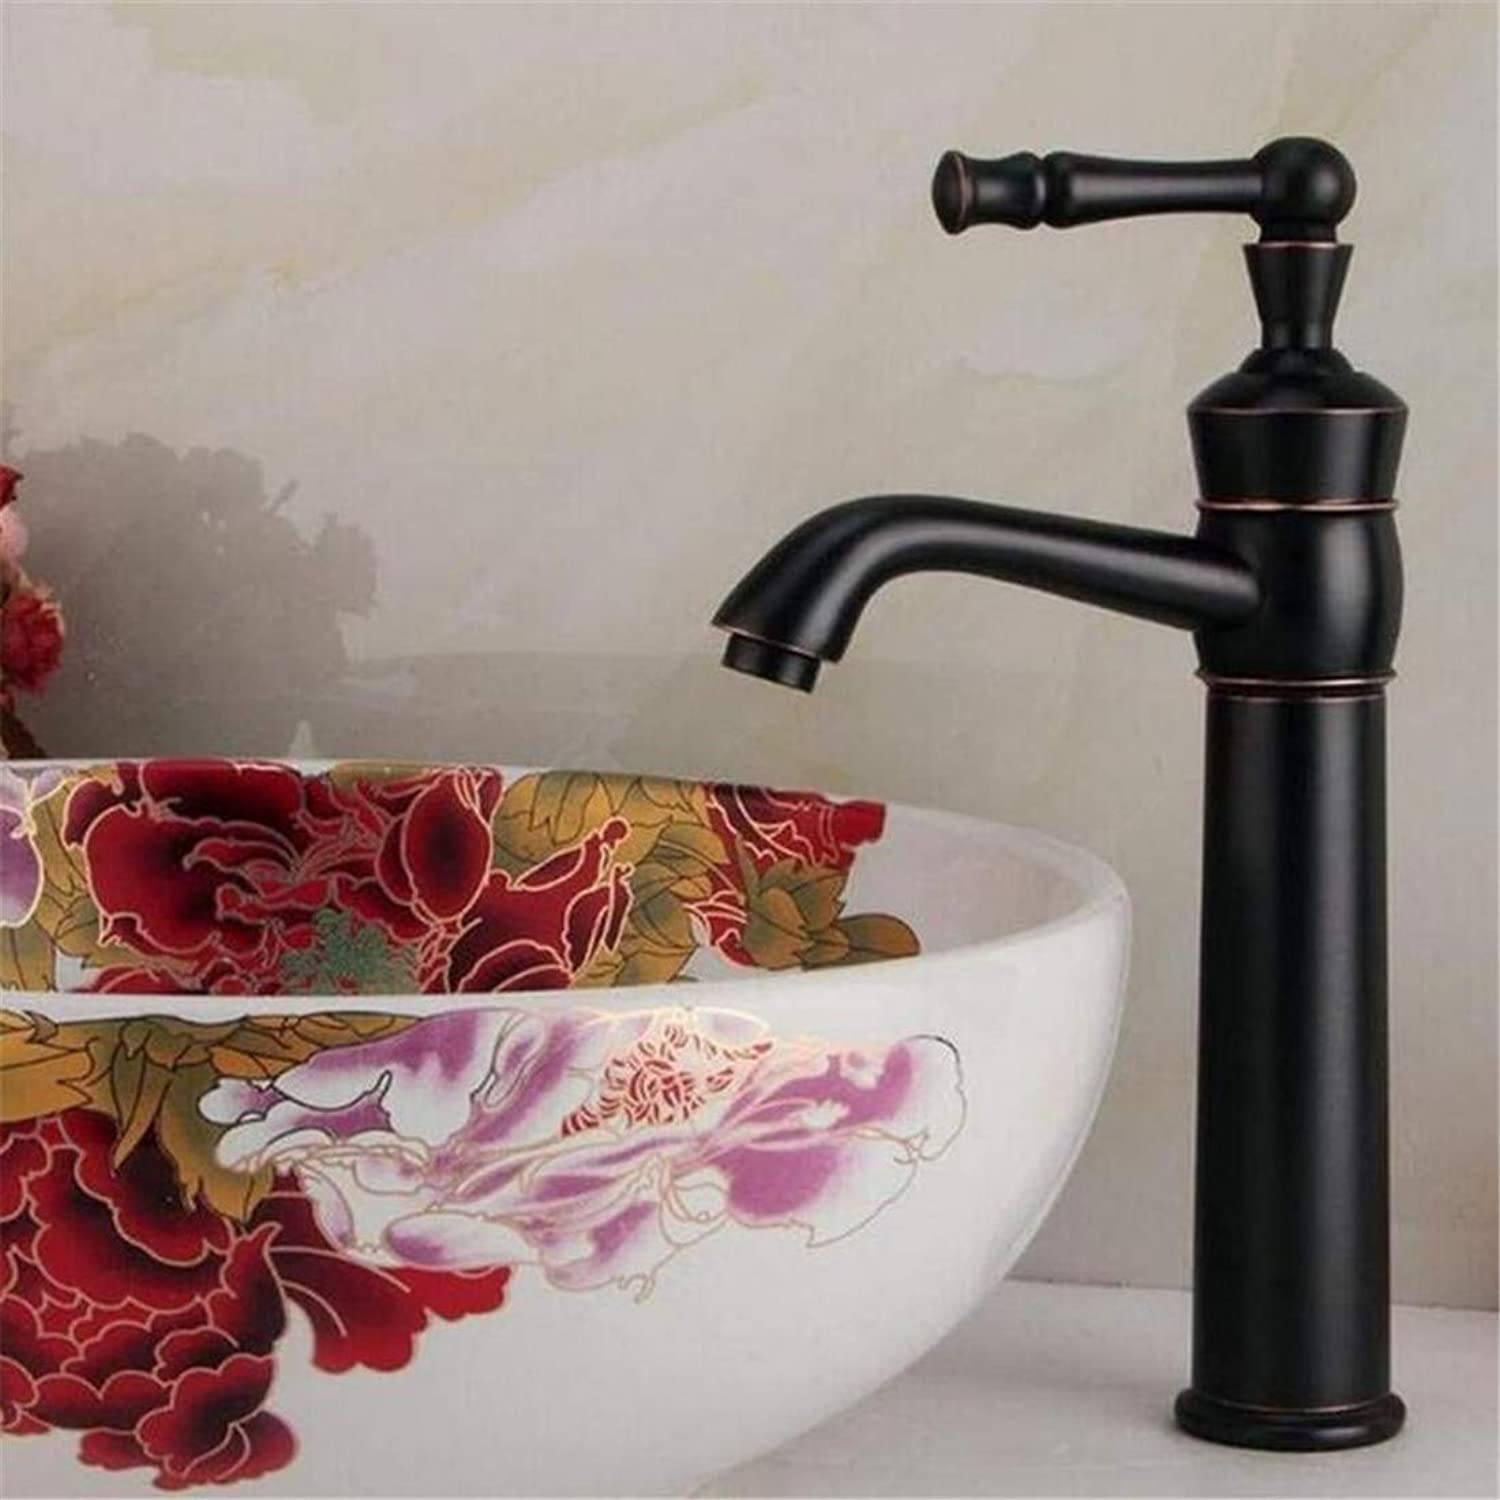 Retro Hot and Cold Faucet Luxury Mixer Platingfaucets Basin Mixer Oil Rubbed Bronze Bathroom Basin Faucet Hot and Cold Water Mixer Tap